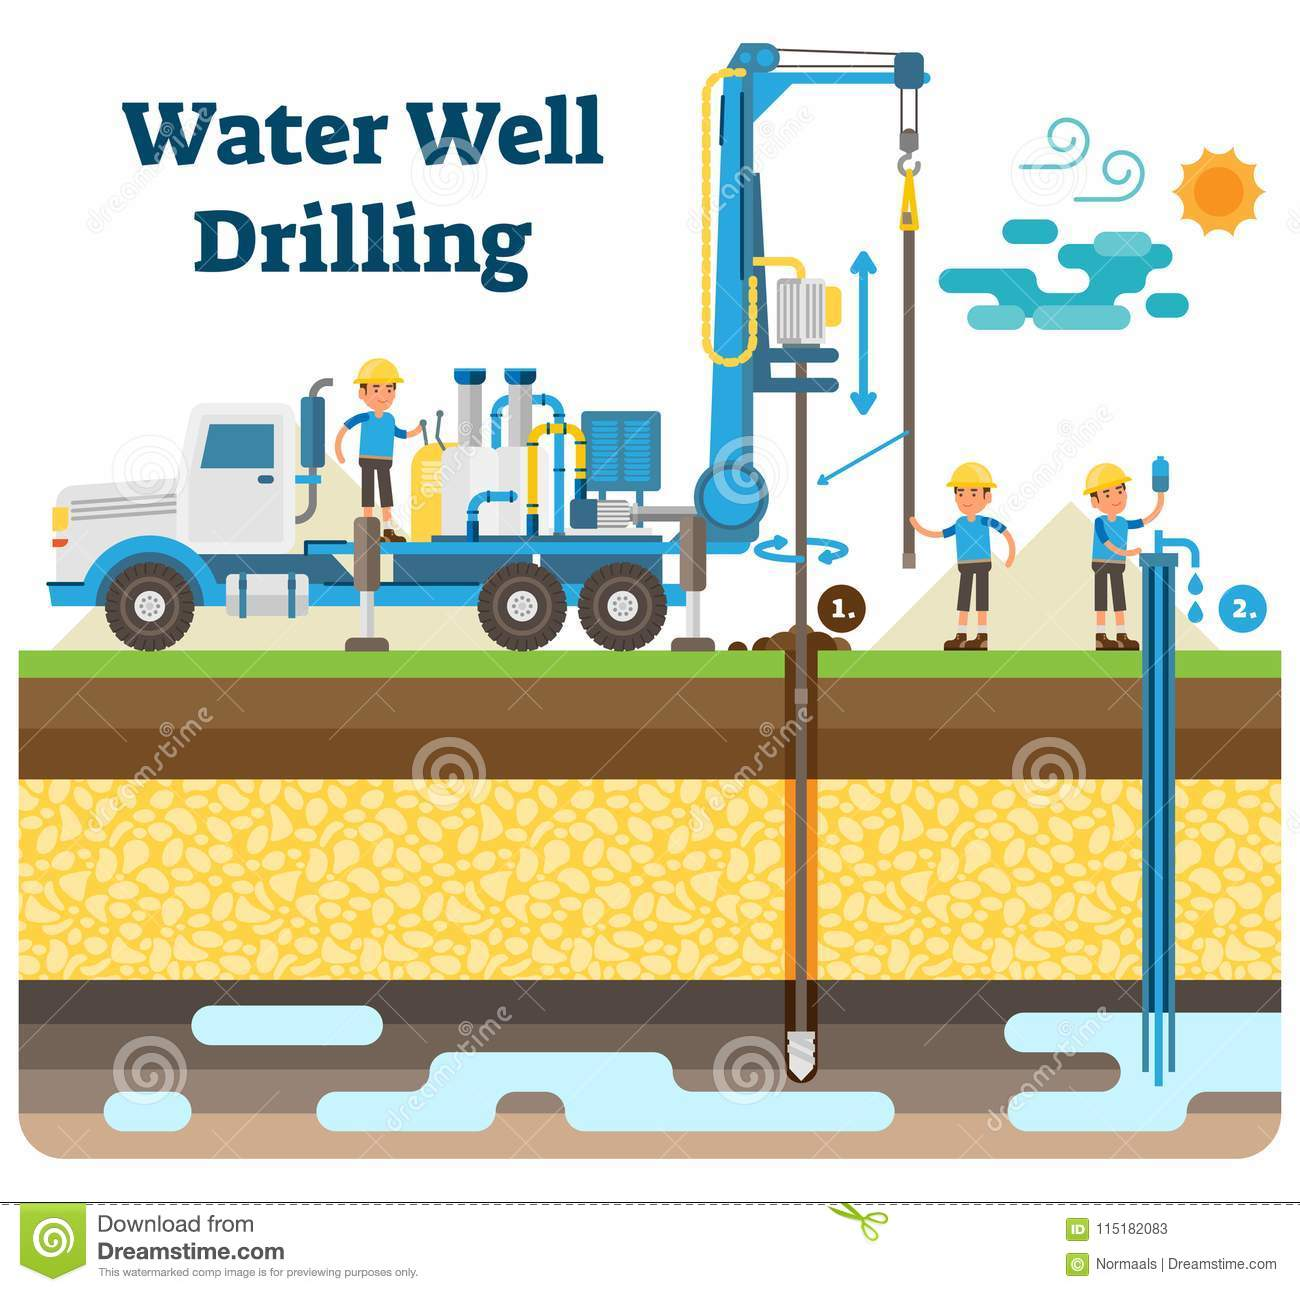 hight resolution of water well drilling vector illustration diagram with drilling process machinery equipment and workers